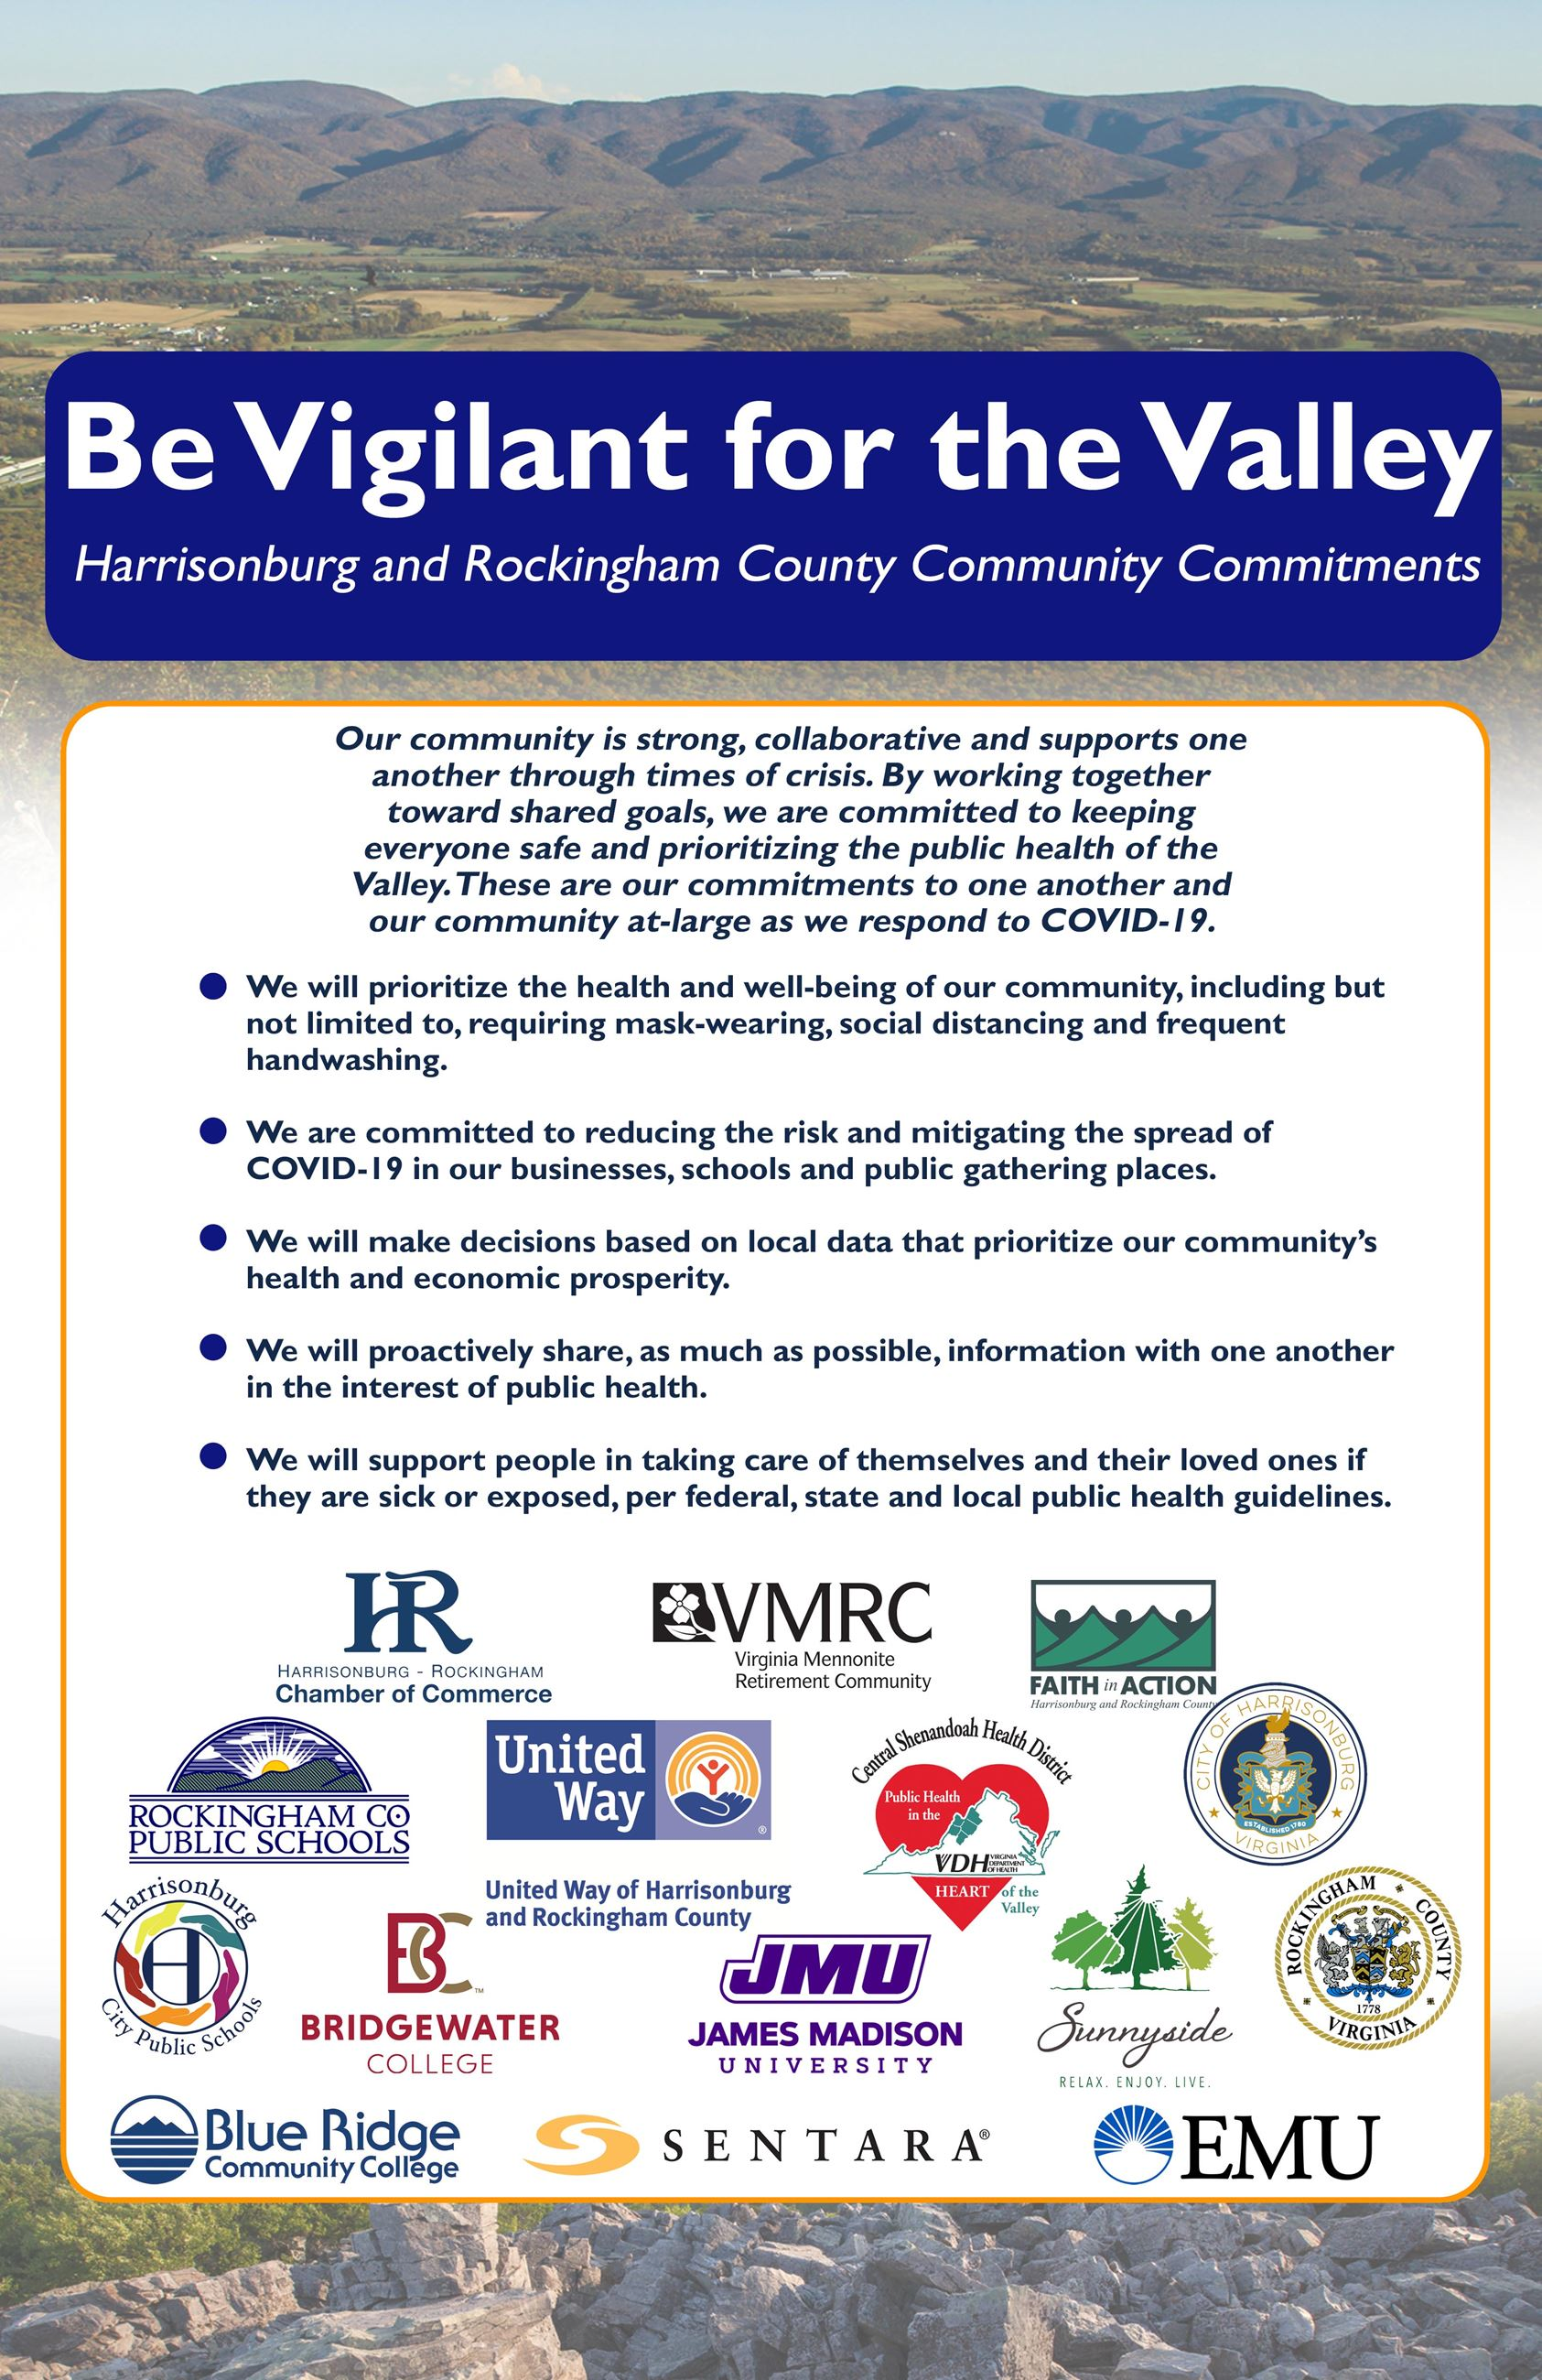 Be Vigilant for the Valley